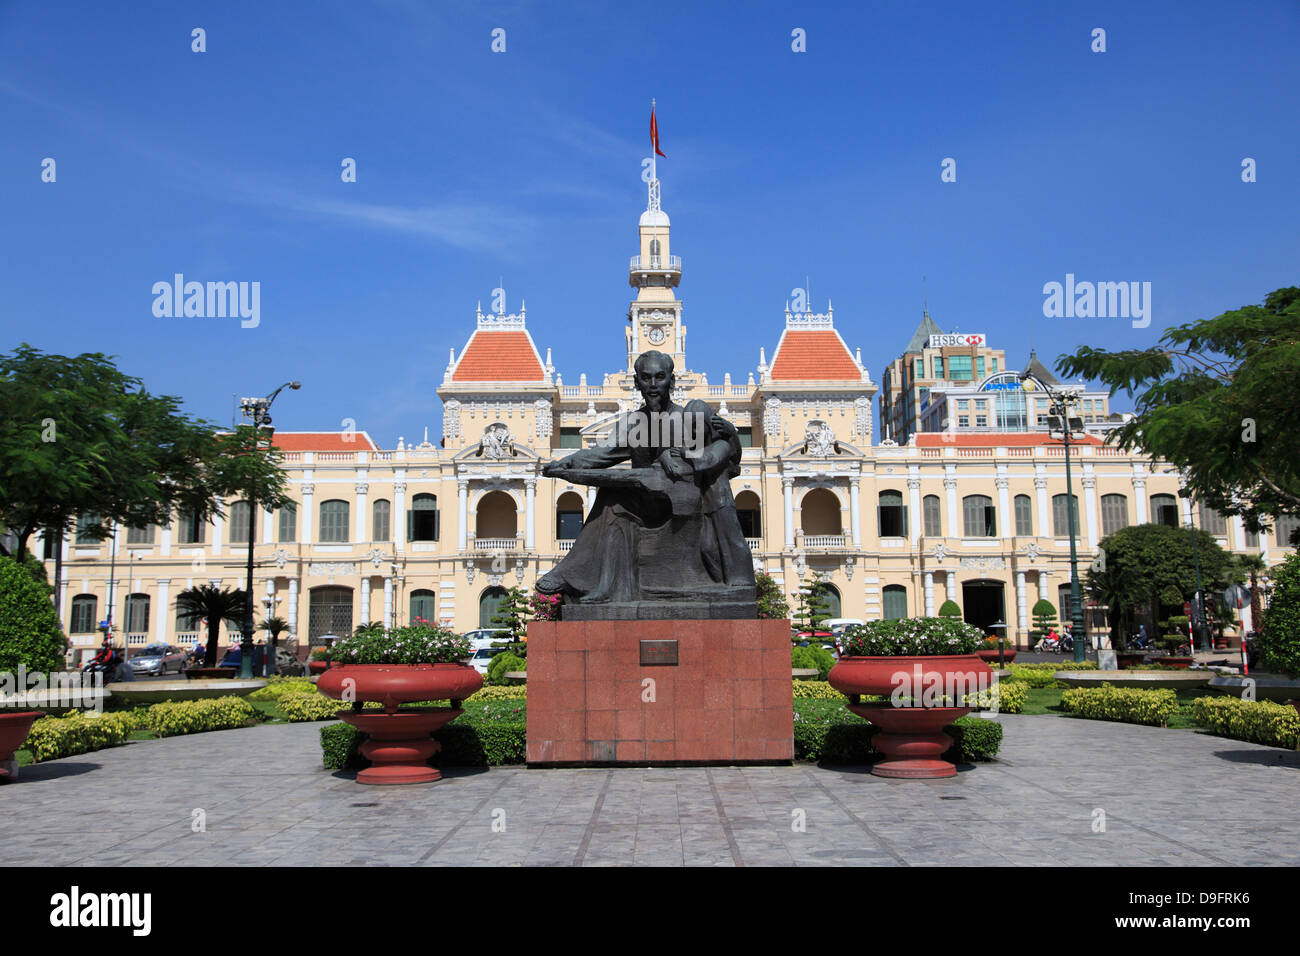 Peoples Committee Building, City Hall, Hotel de Ville, Ho Chi Minh Statue, Ho Chi Minh City, Saigon, Vietnam - Stock Image